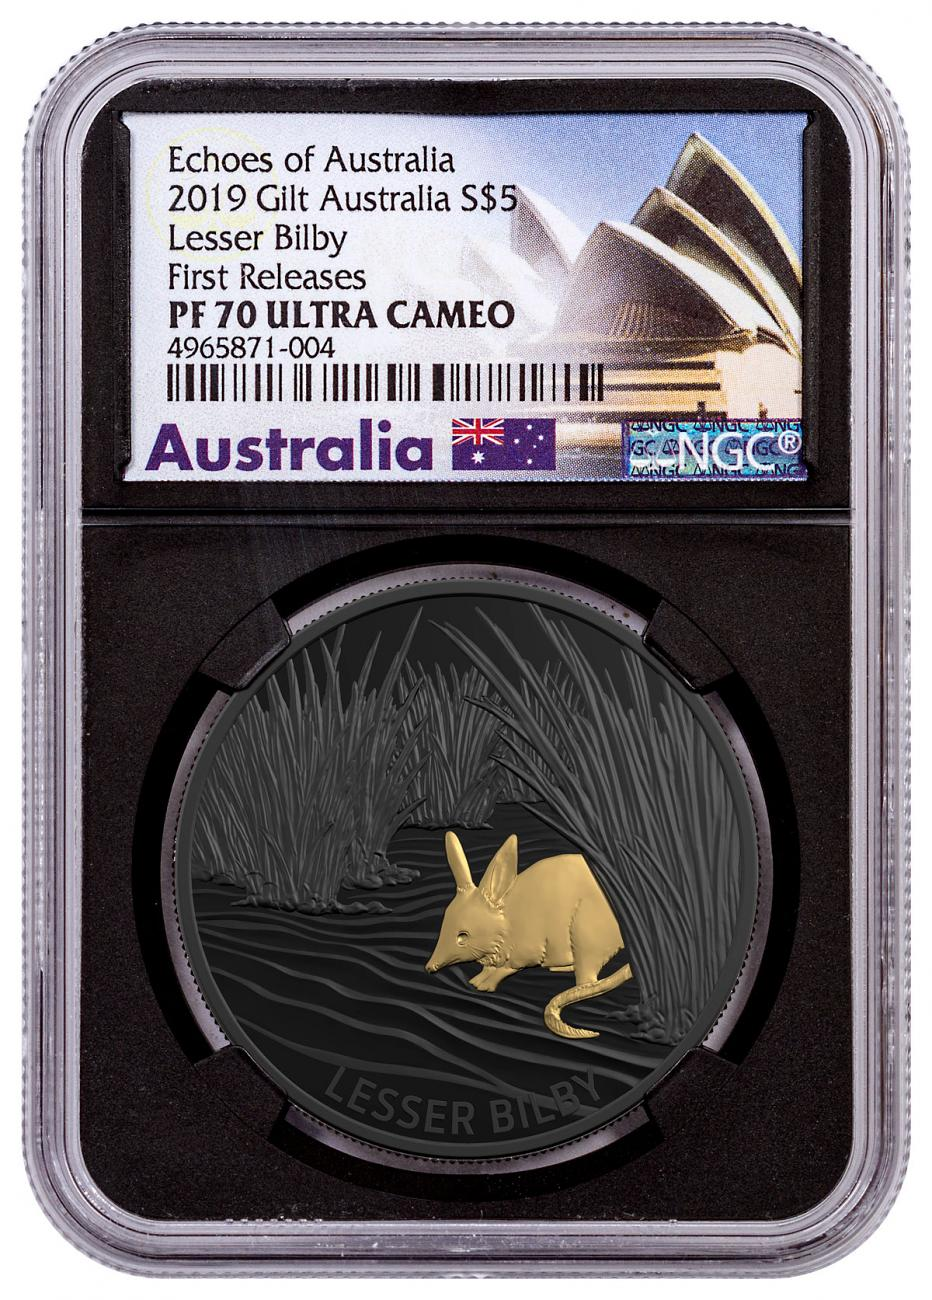 2019 Australia Echoes of Australia - Lesser Bilby 1 oz Silver Nickel-Plated Proof $5 Coin NGC PF70 UC FR OGP Exclusive Opera House LabeL